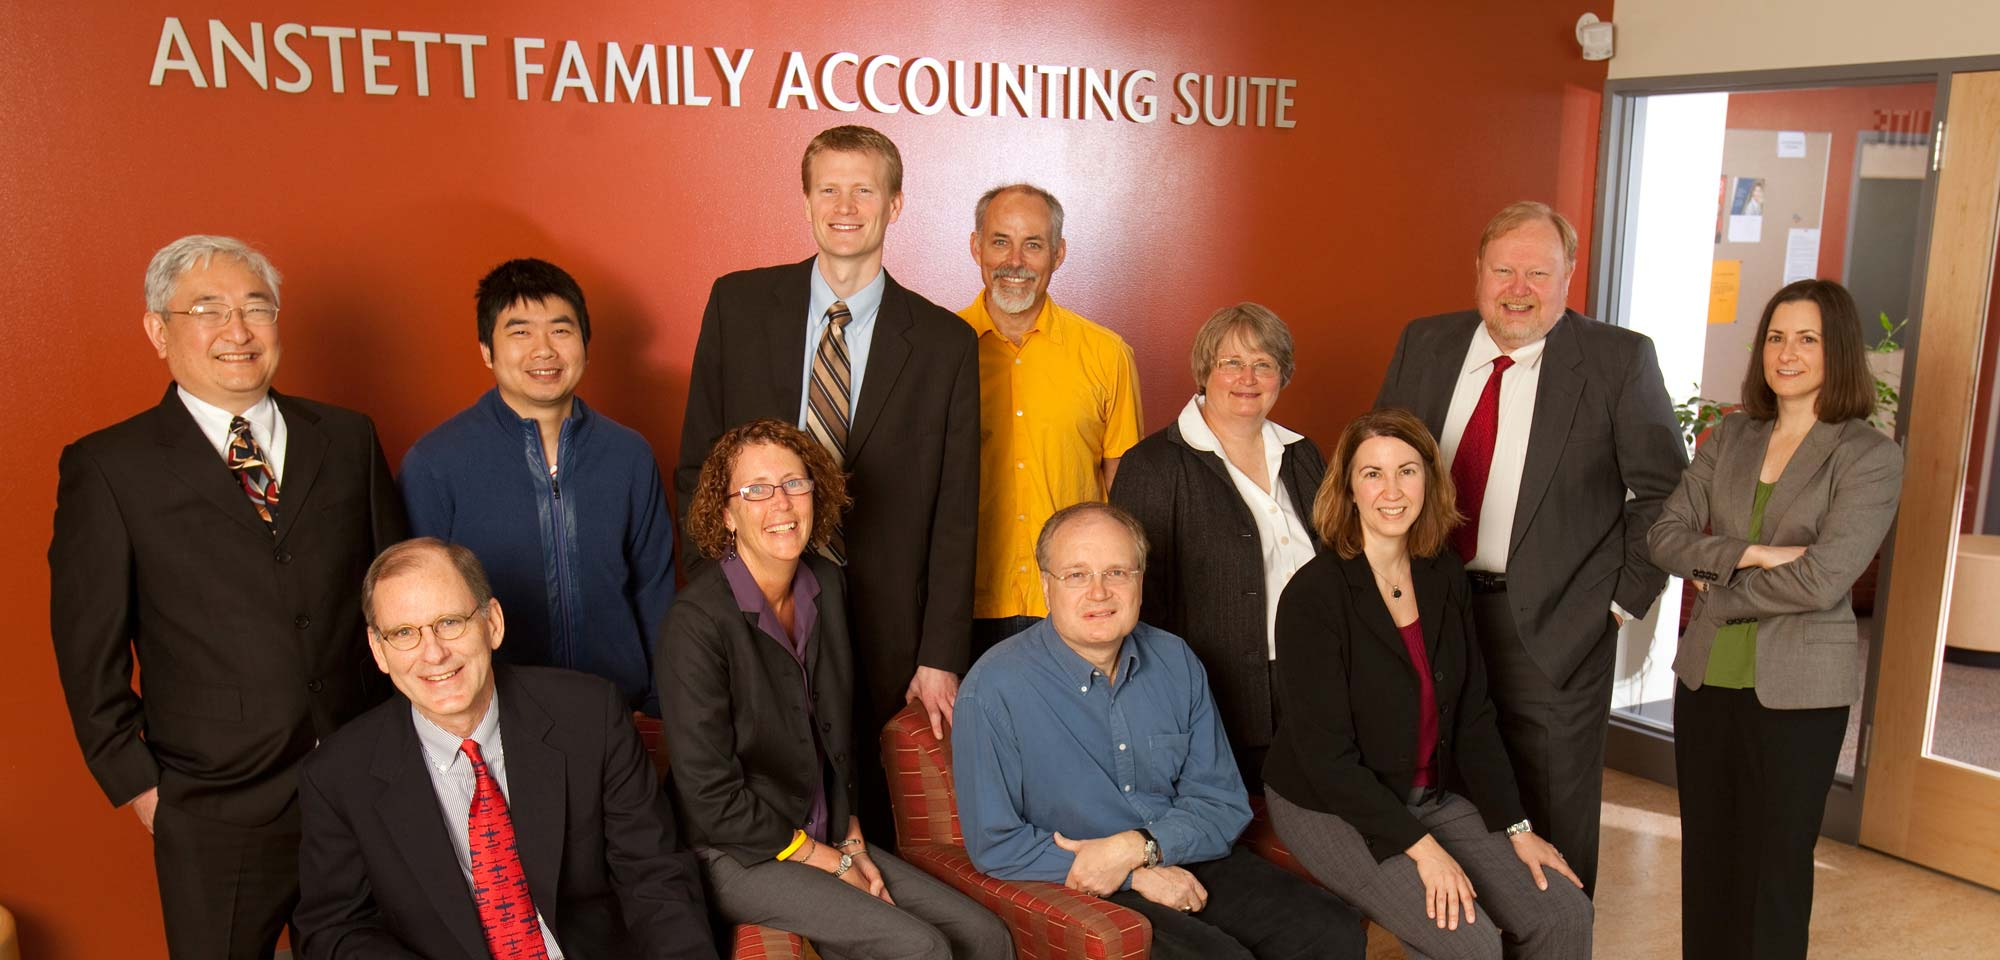 Accounting staff pose in a group in front of the accounting suite